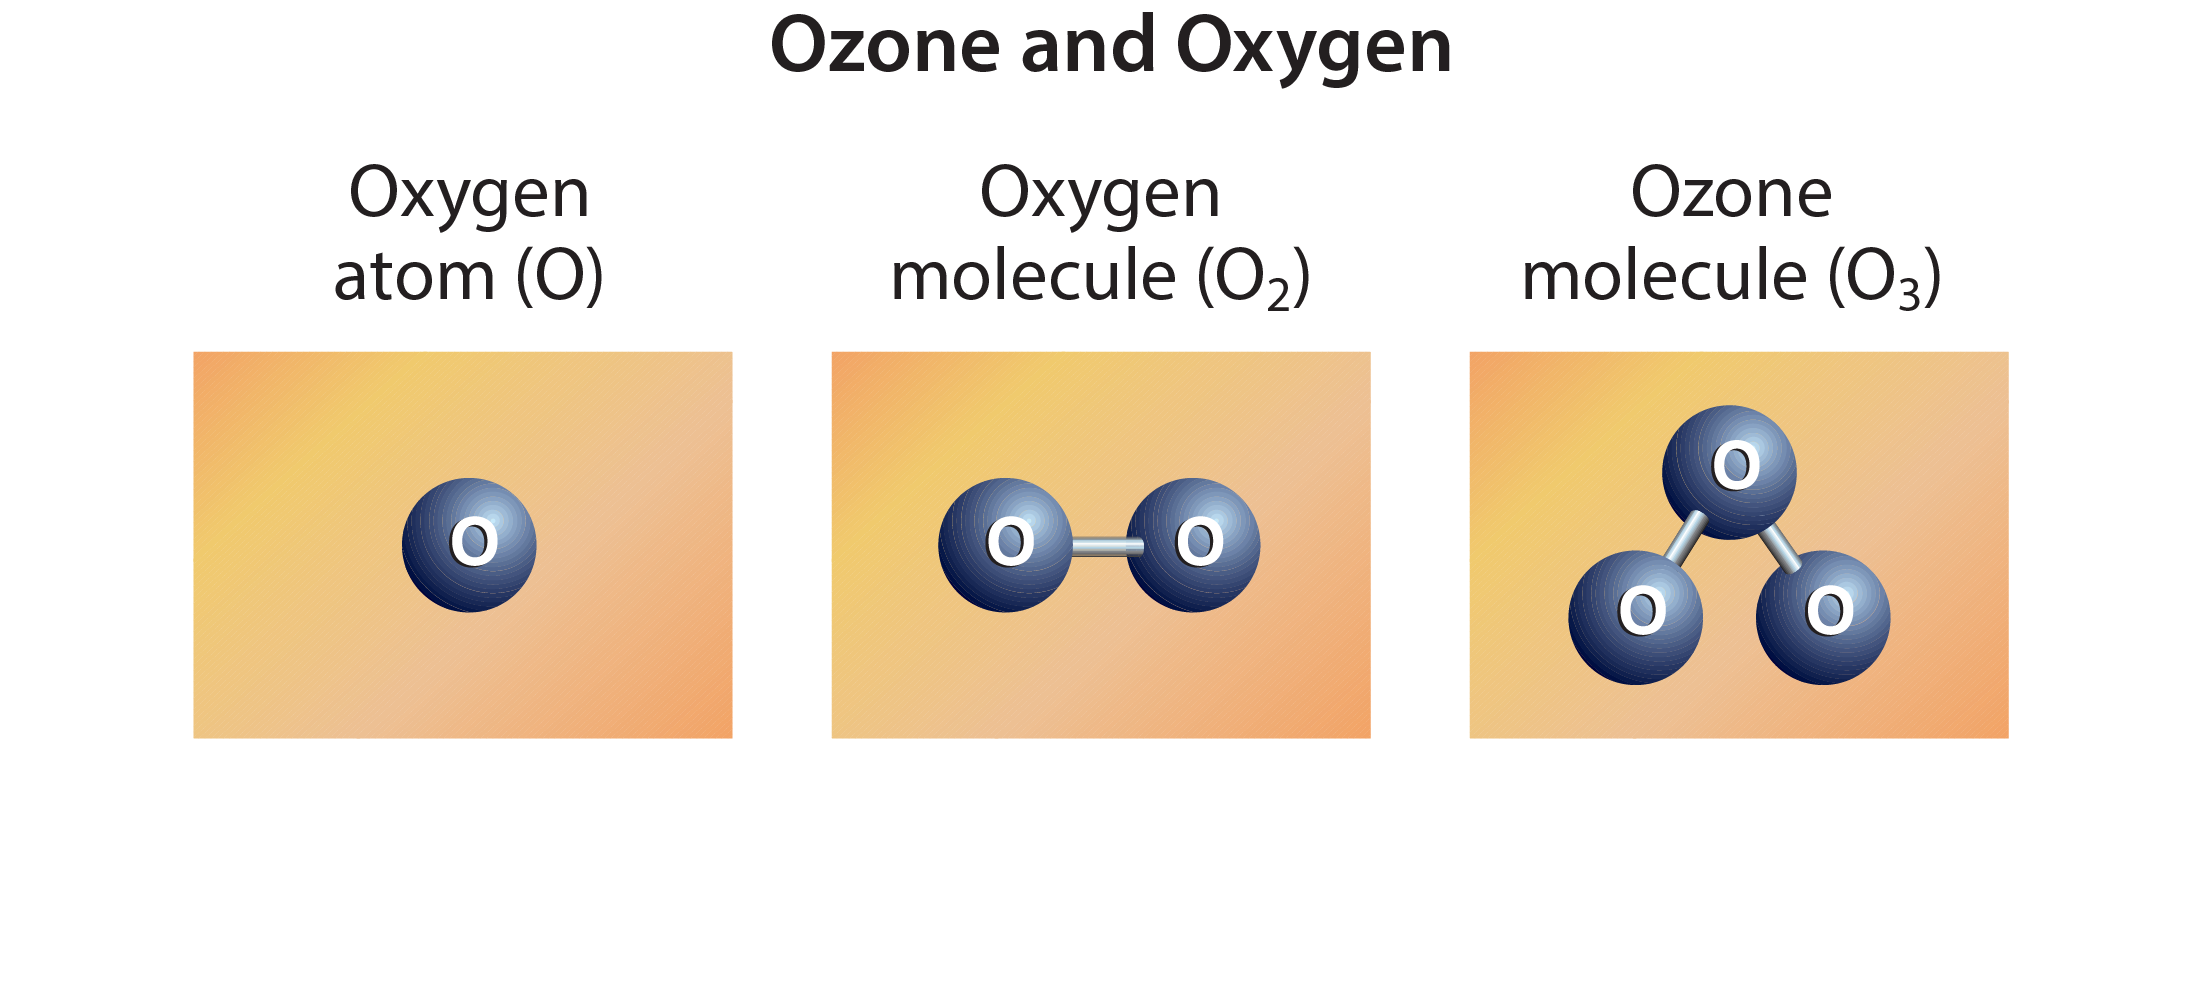 Ozone and Oxygen